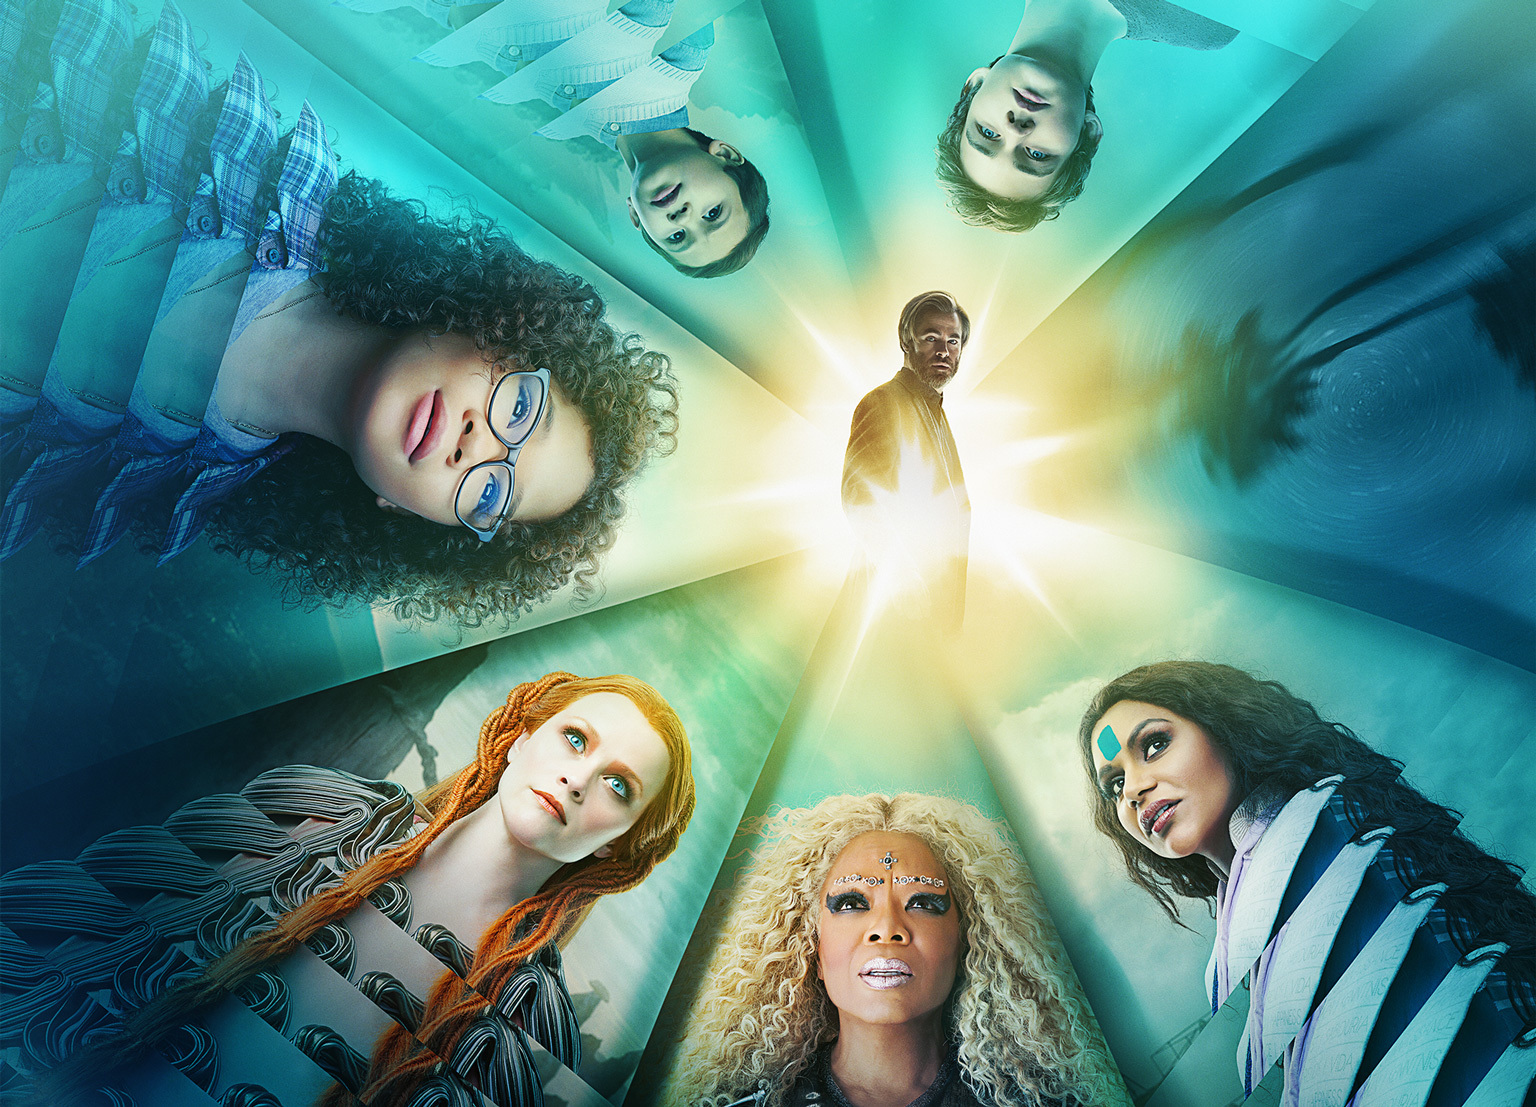 The Good The Bad and the Geeky Episode 367 - Disney's A Wrinkle In Time